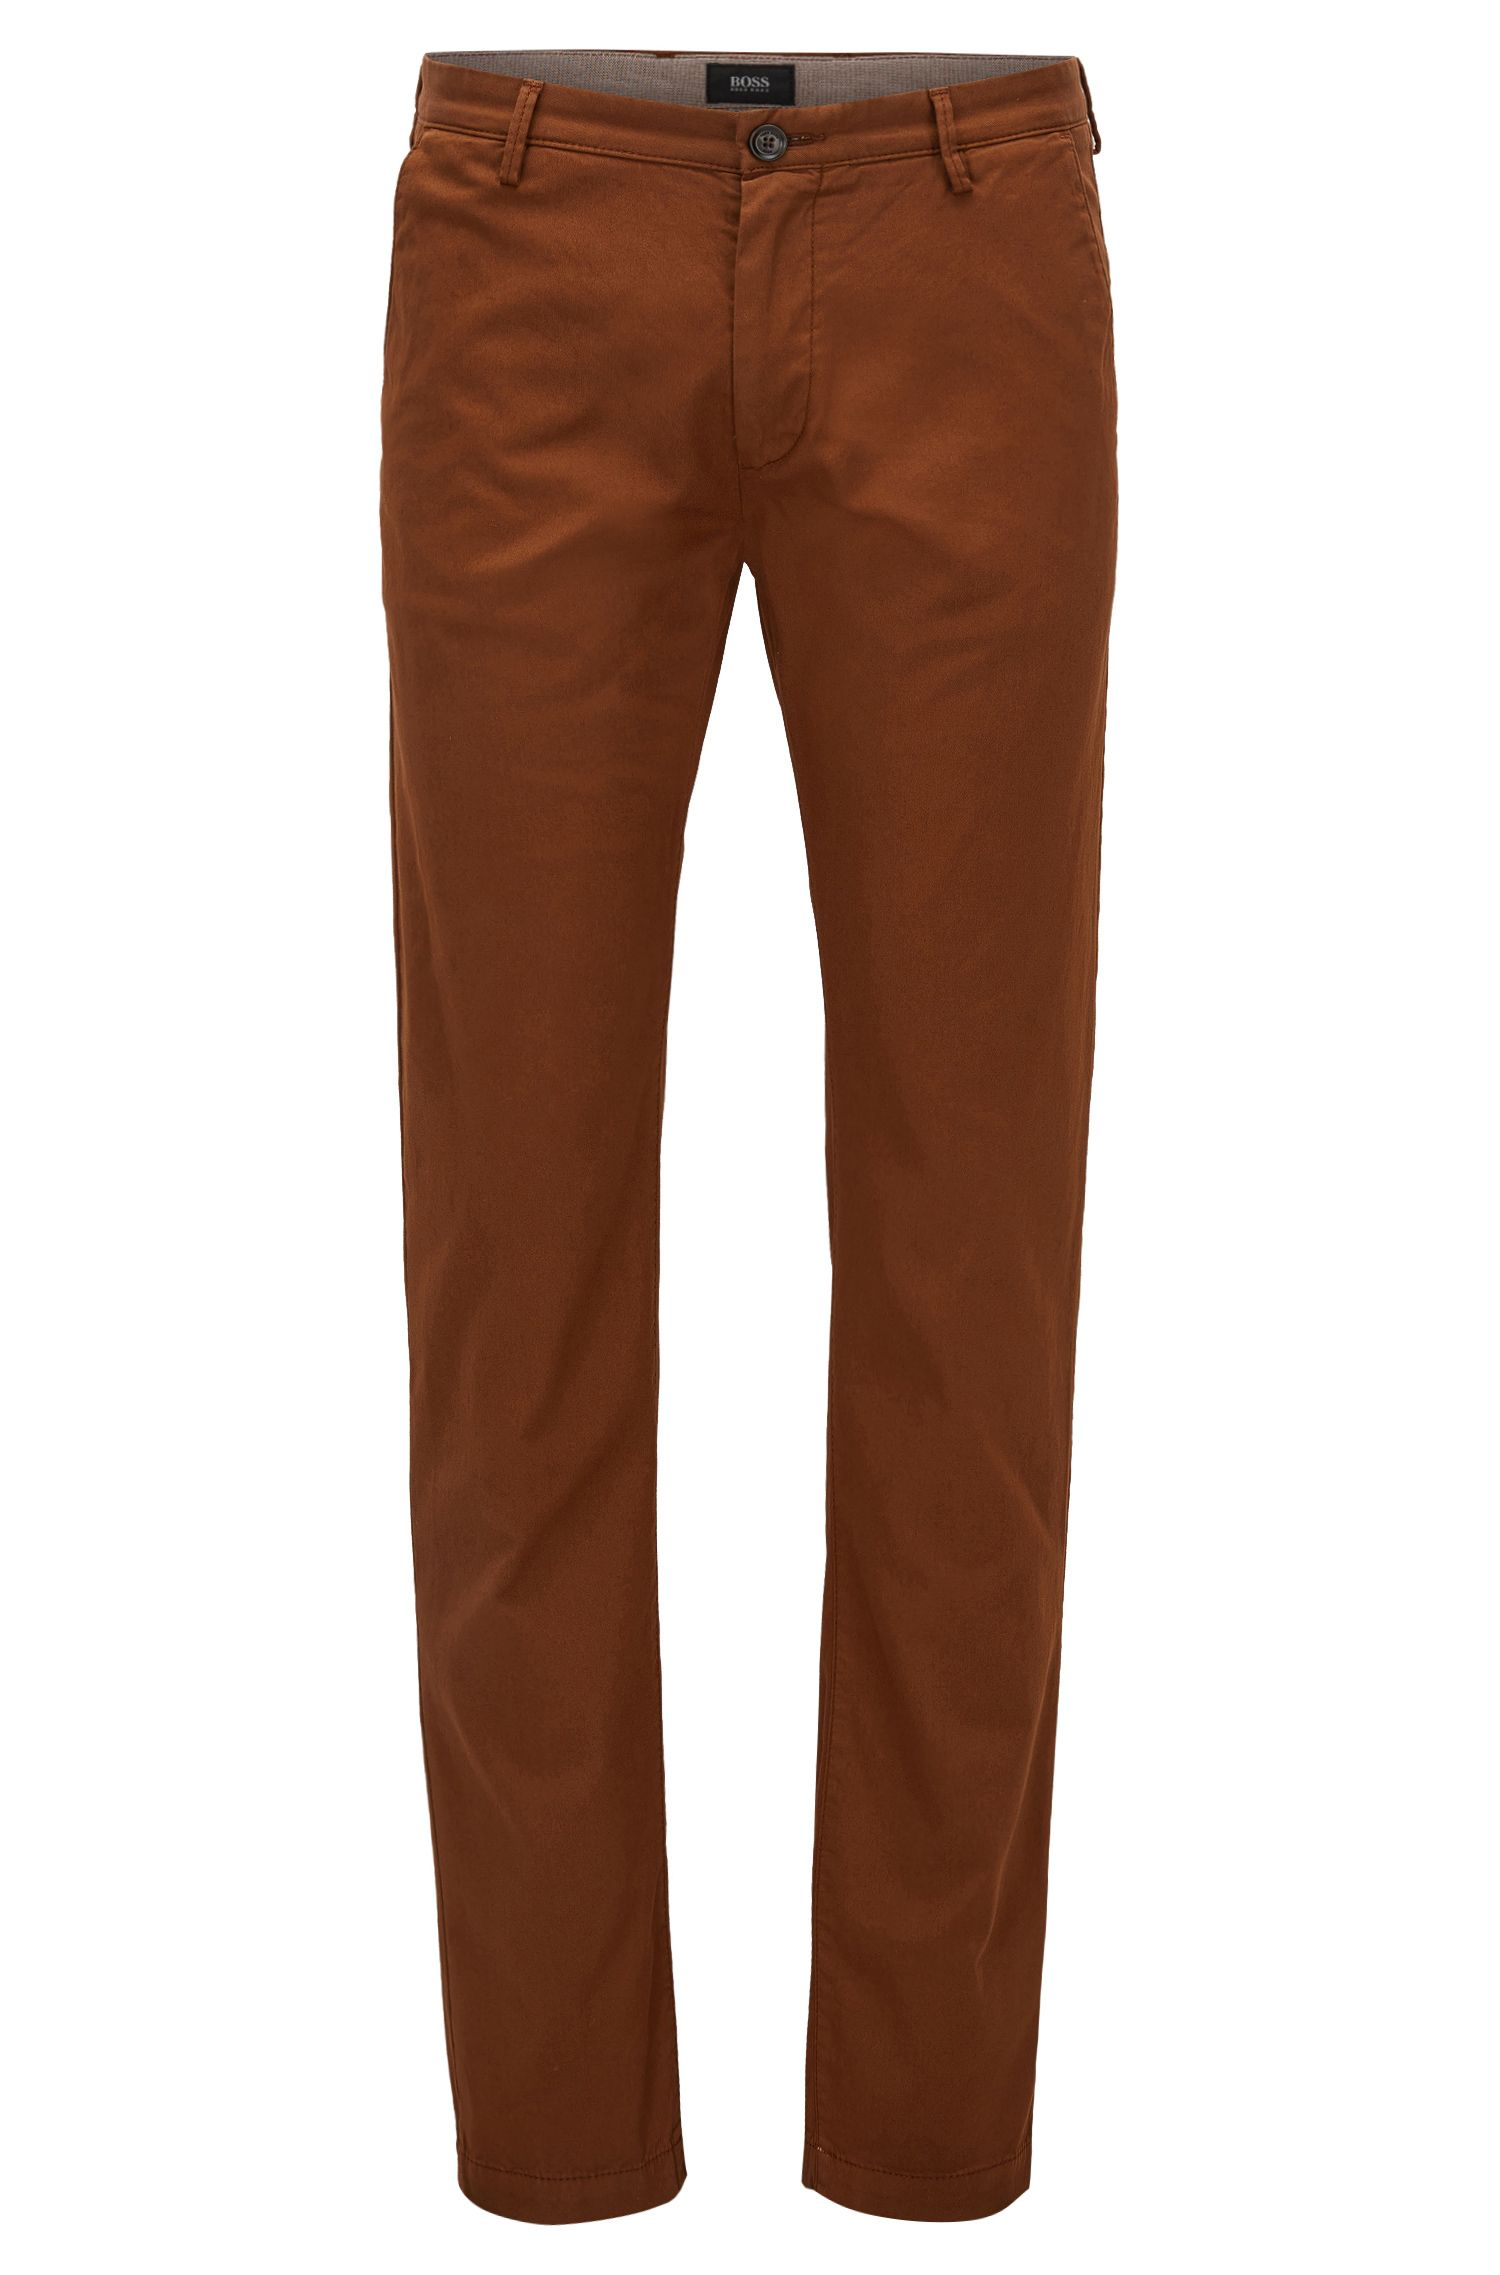 Cotton Stretch Chino Pant, Slim Fit | Rice D